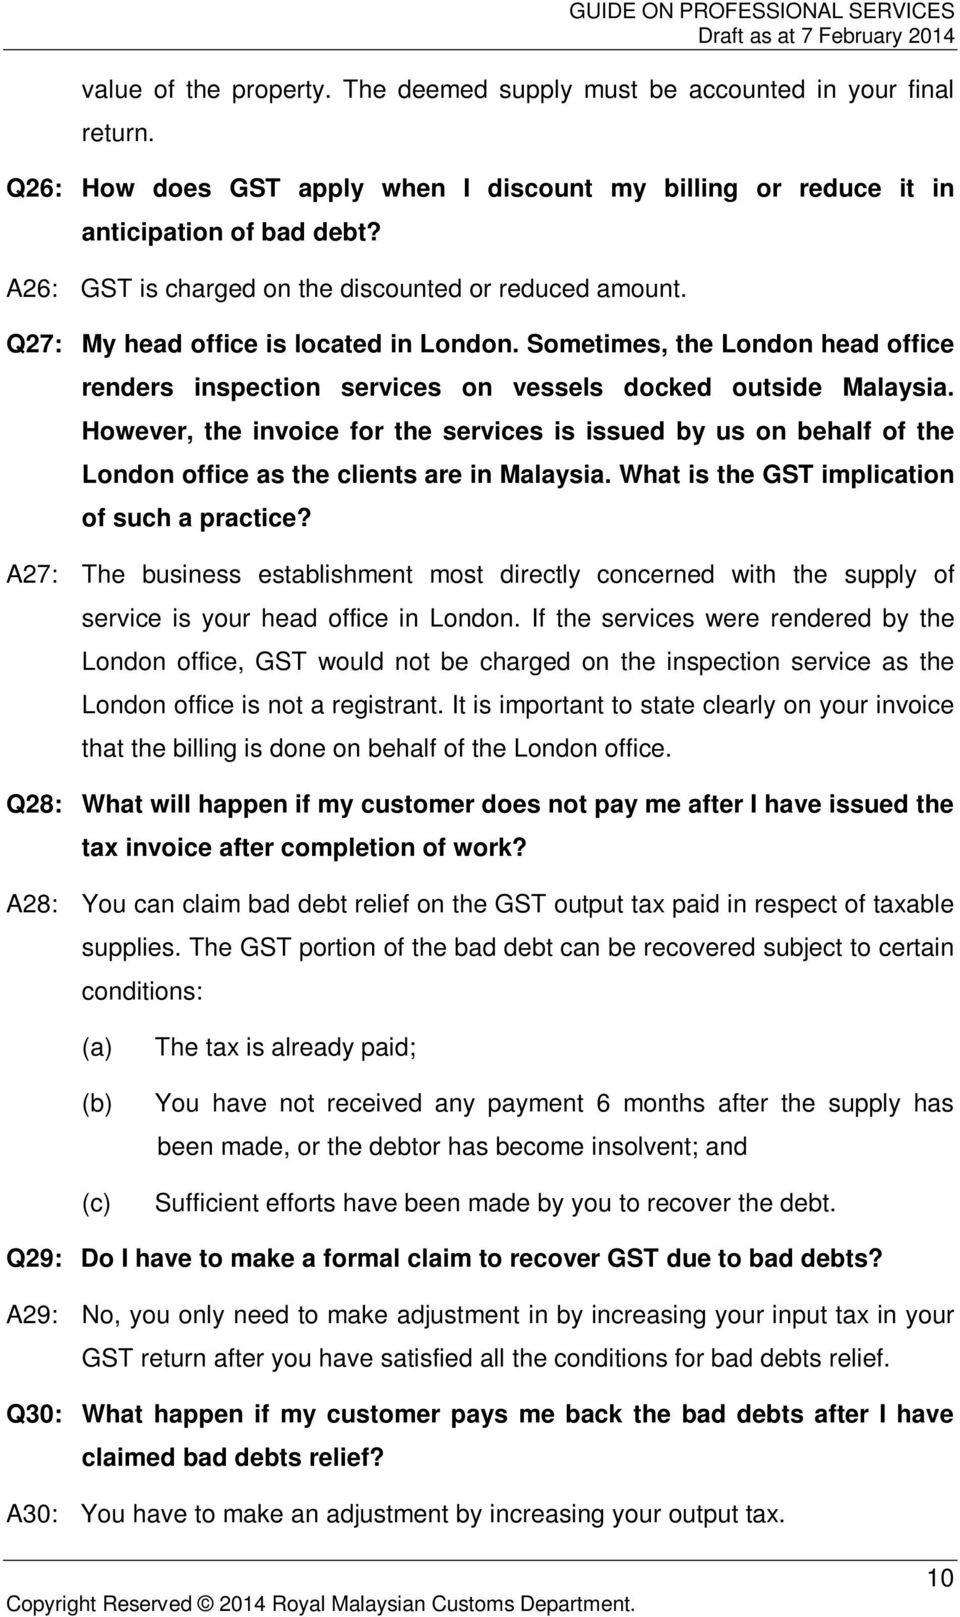 However, the invoice for the services is issued by us on behalf of the London office as the clients are in Malaysia. What is the GST implication of such a practice?